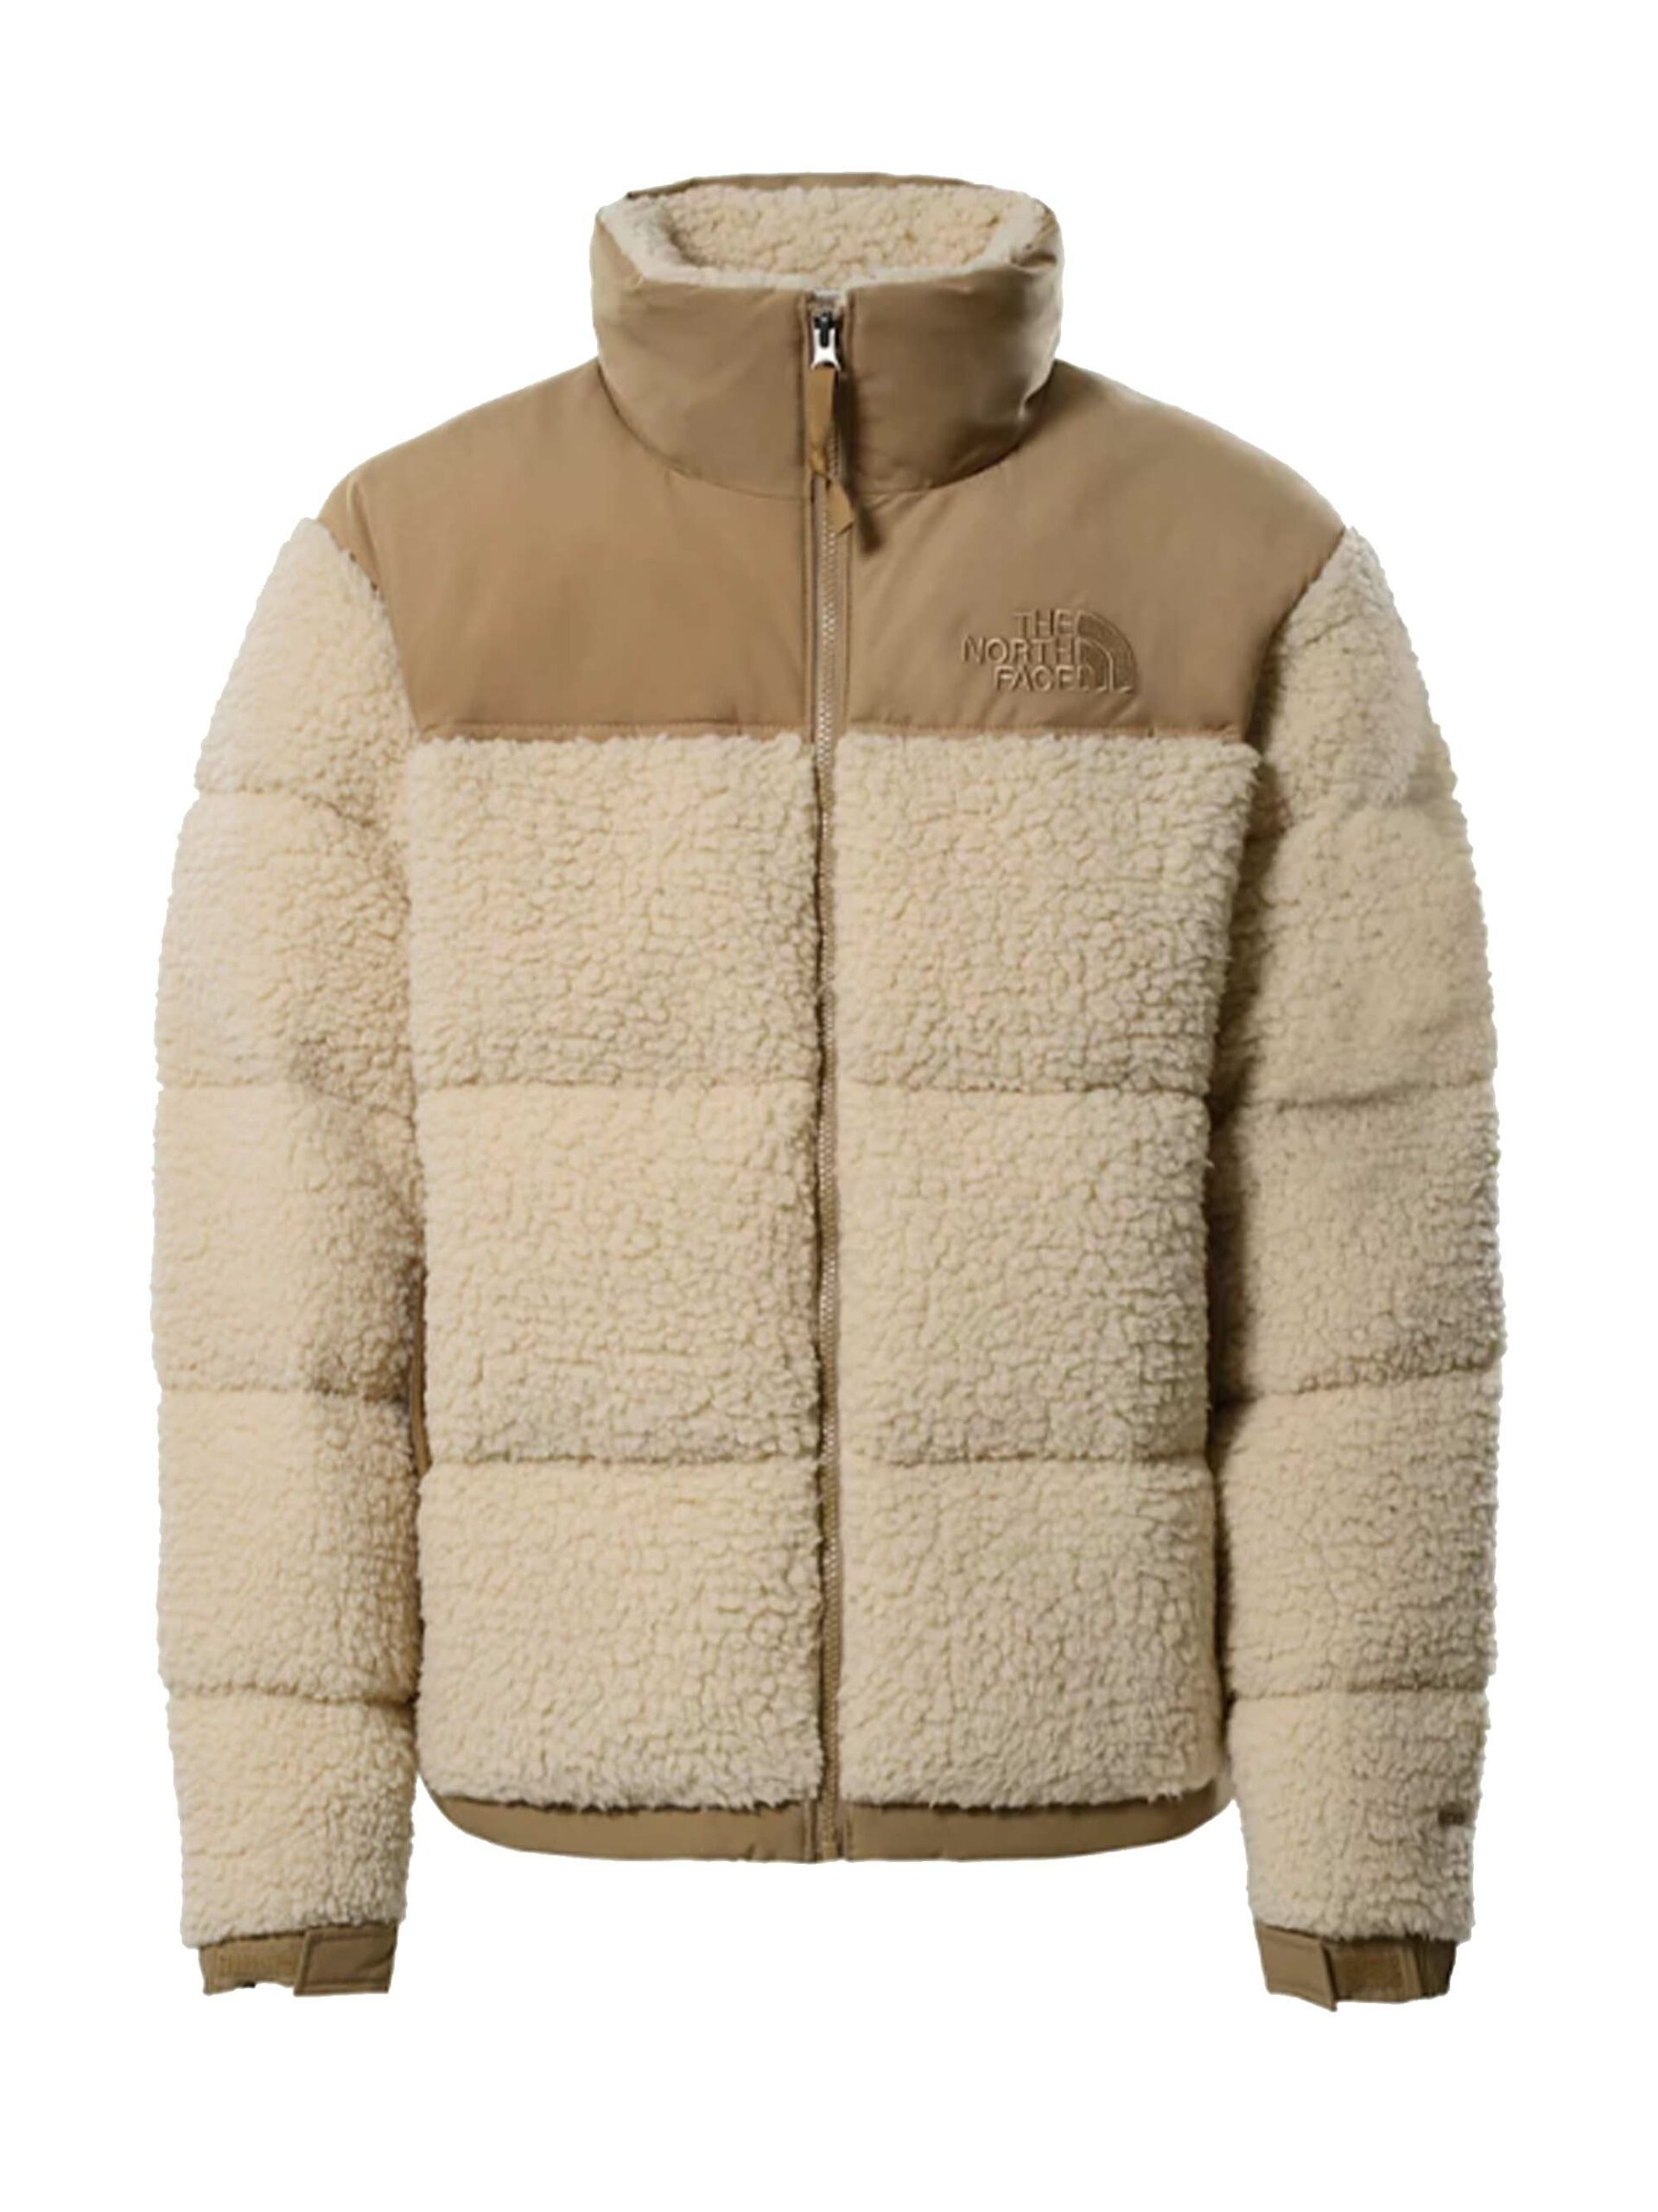 <p class='small-title'>THE NORTH FACE</p>Nuptse sherpa jkt